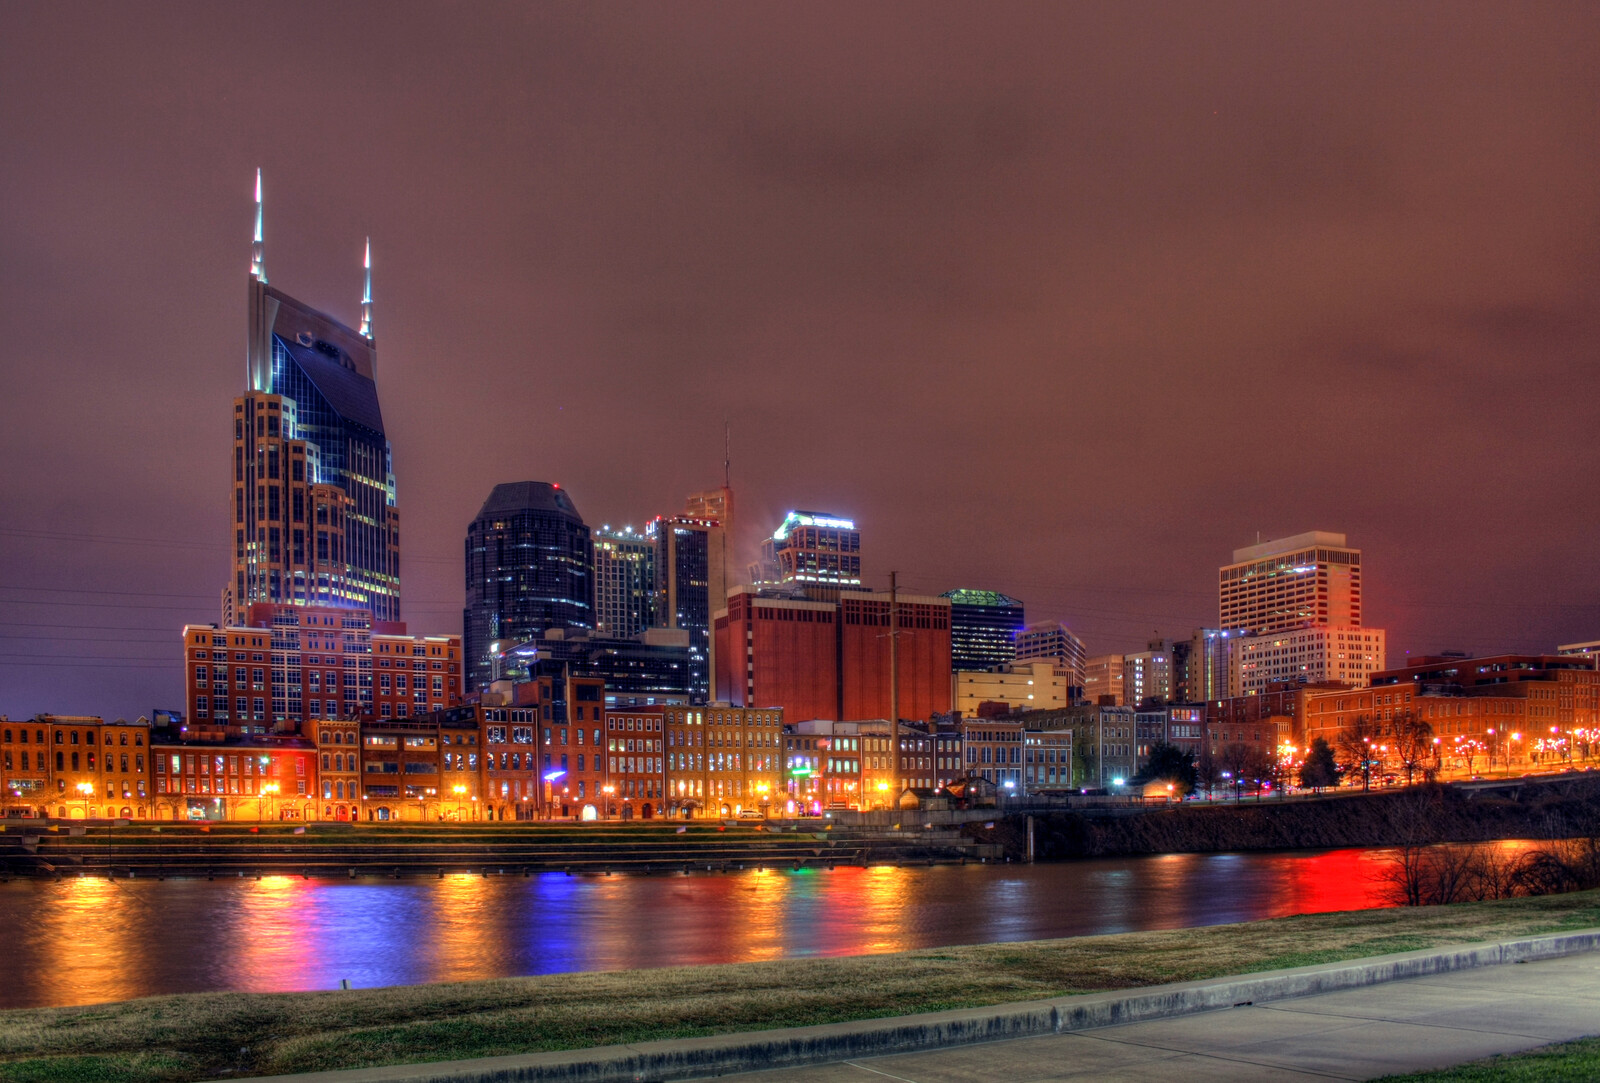 Nashville skyline at night , cloudy gray purple skies in the background with the city lights reflecting off the water